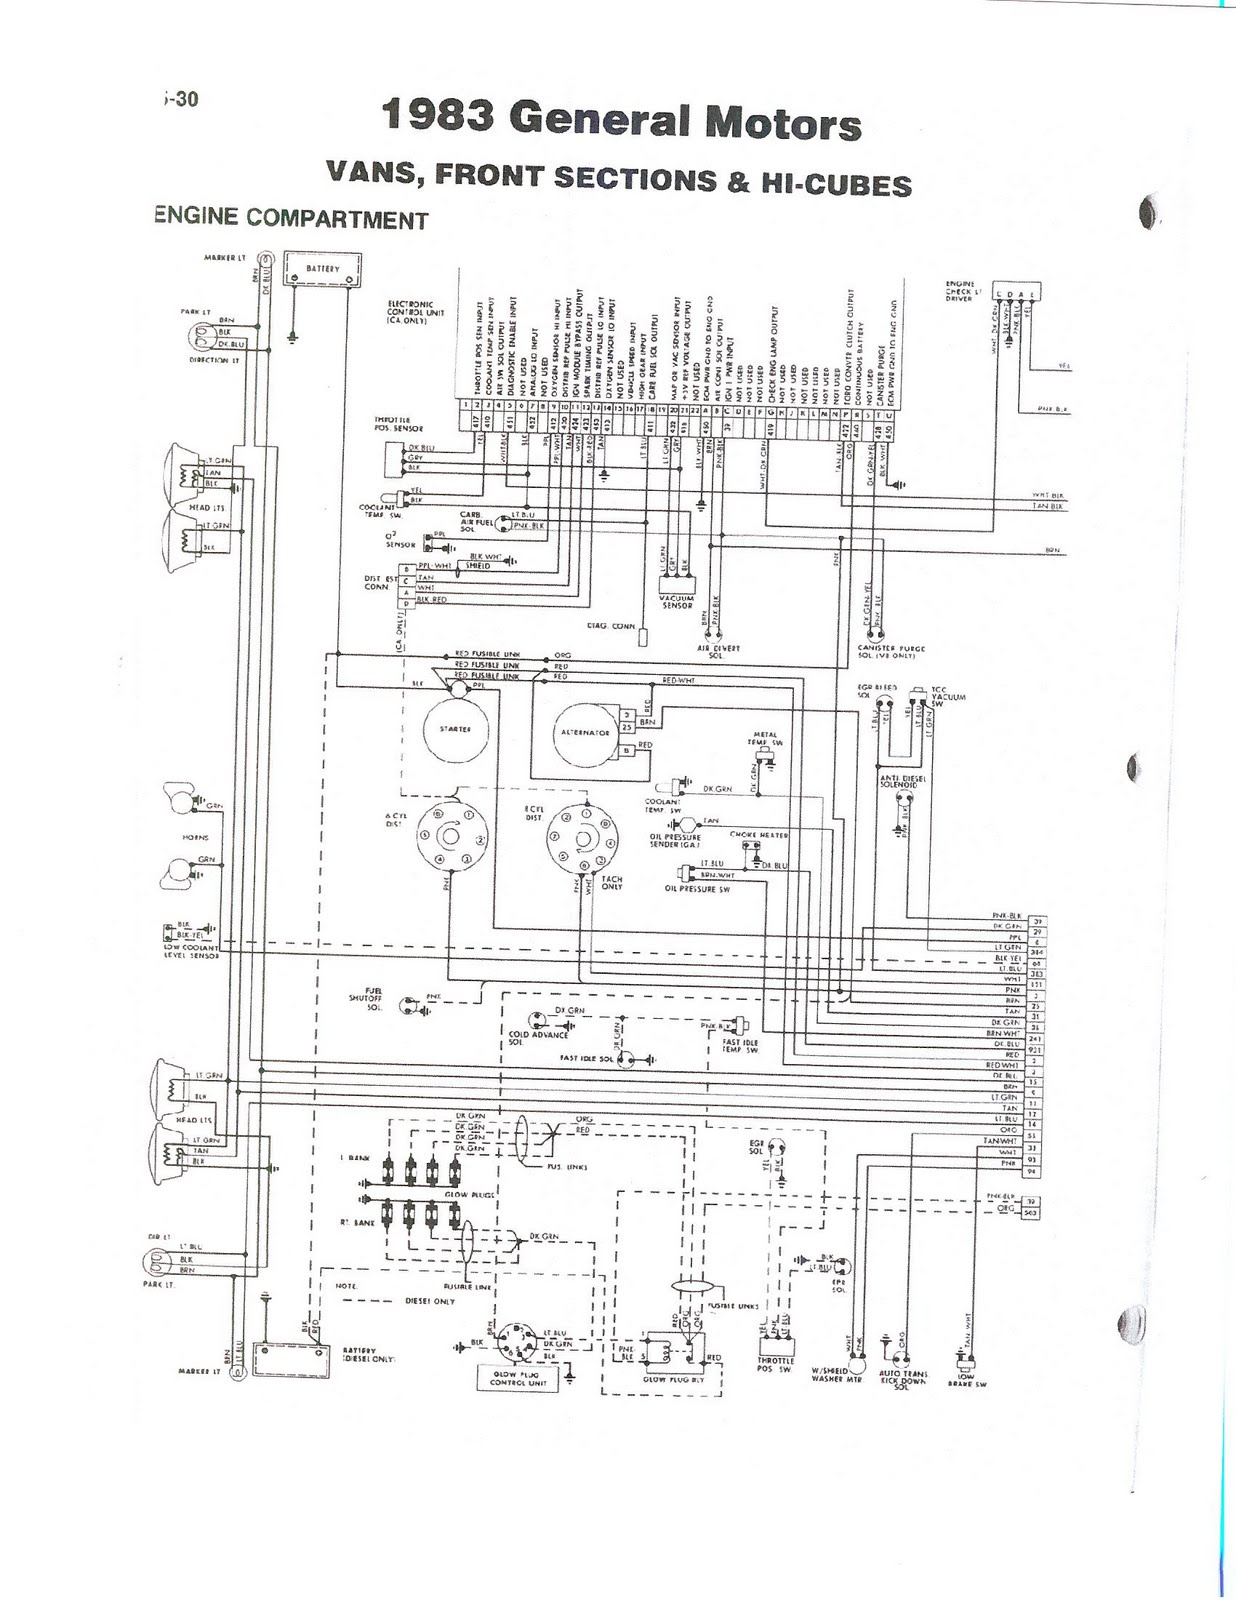 Wiring Diagram For 1983 Starcraft 33 Images Pop Up Camper Fleetwood Pace Arrow Owners Manuals Wireing 83 Gm Bus Jon